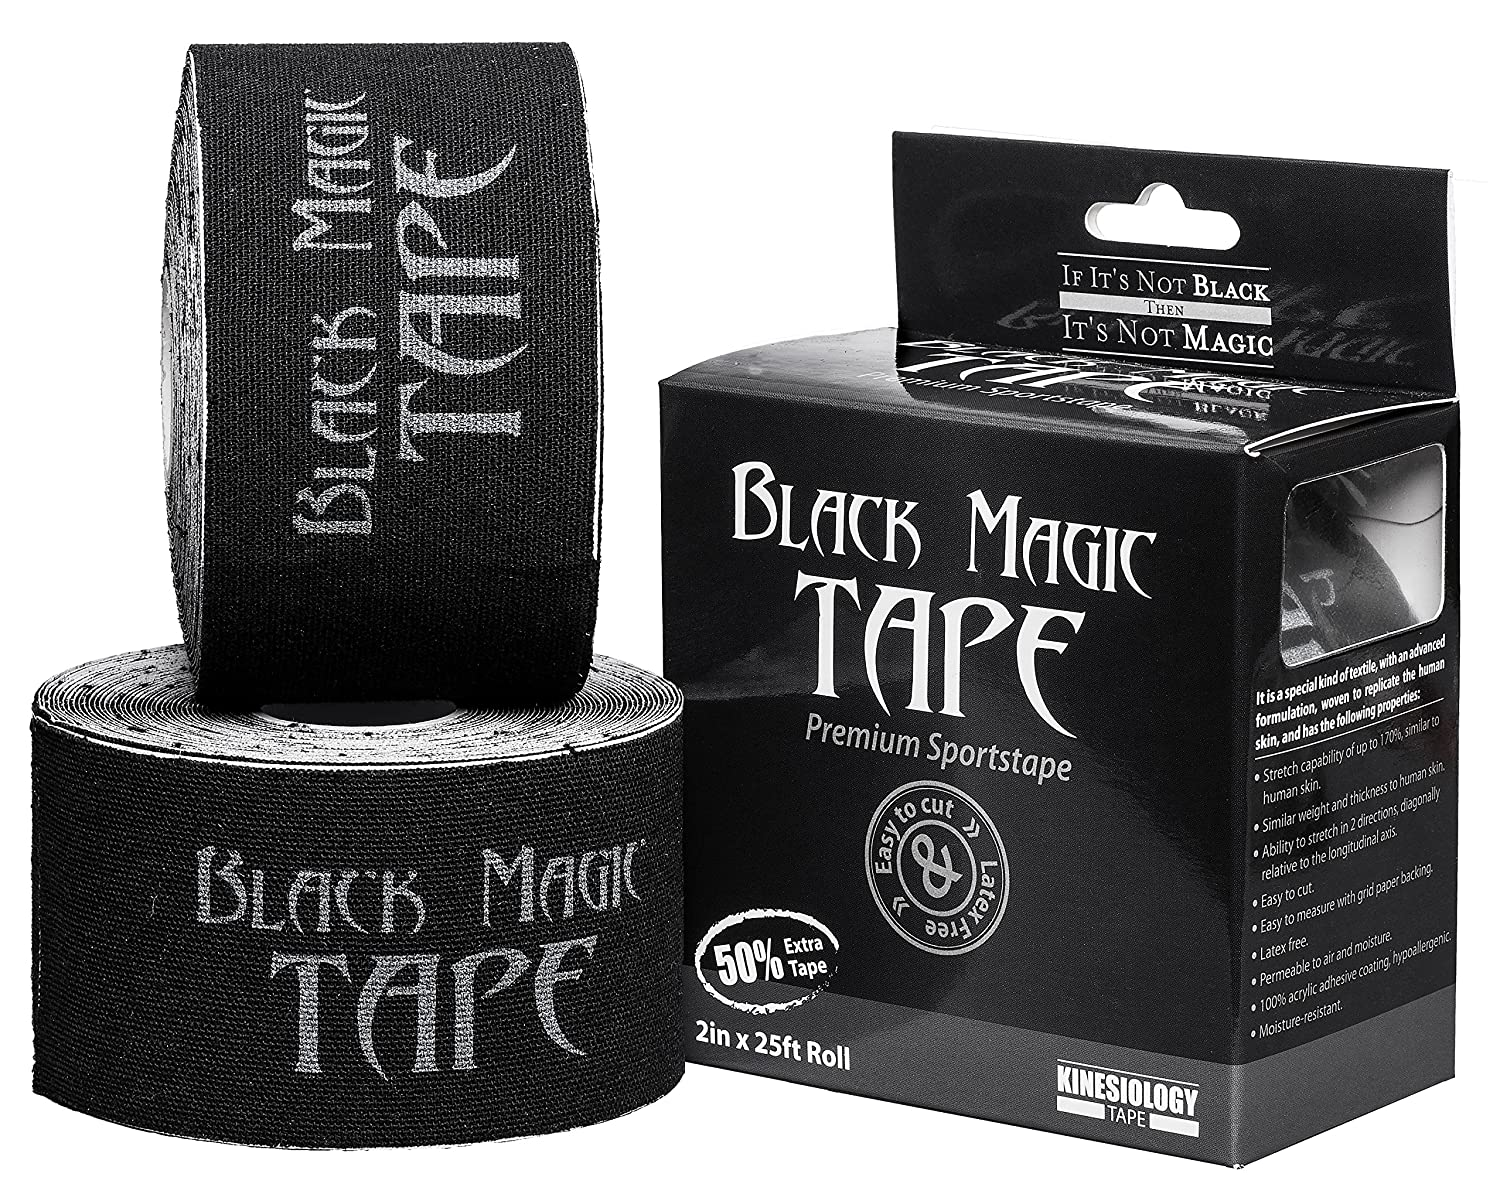 72000f7f0ab Extra Long 25 Foot Roll - Black Magic Tape - 1.5X Longer Roll - Stays  Attached Up To 5 Days - Kinesiology KT Kinesio Wrap - Use For Sports  Injuries, MMA, ...